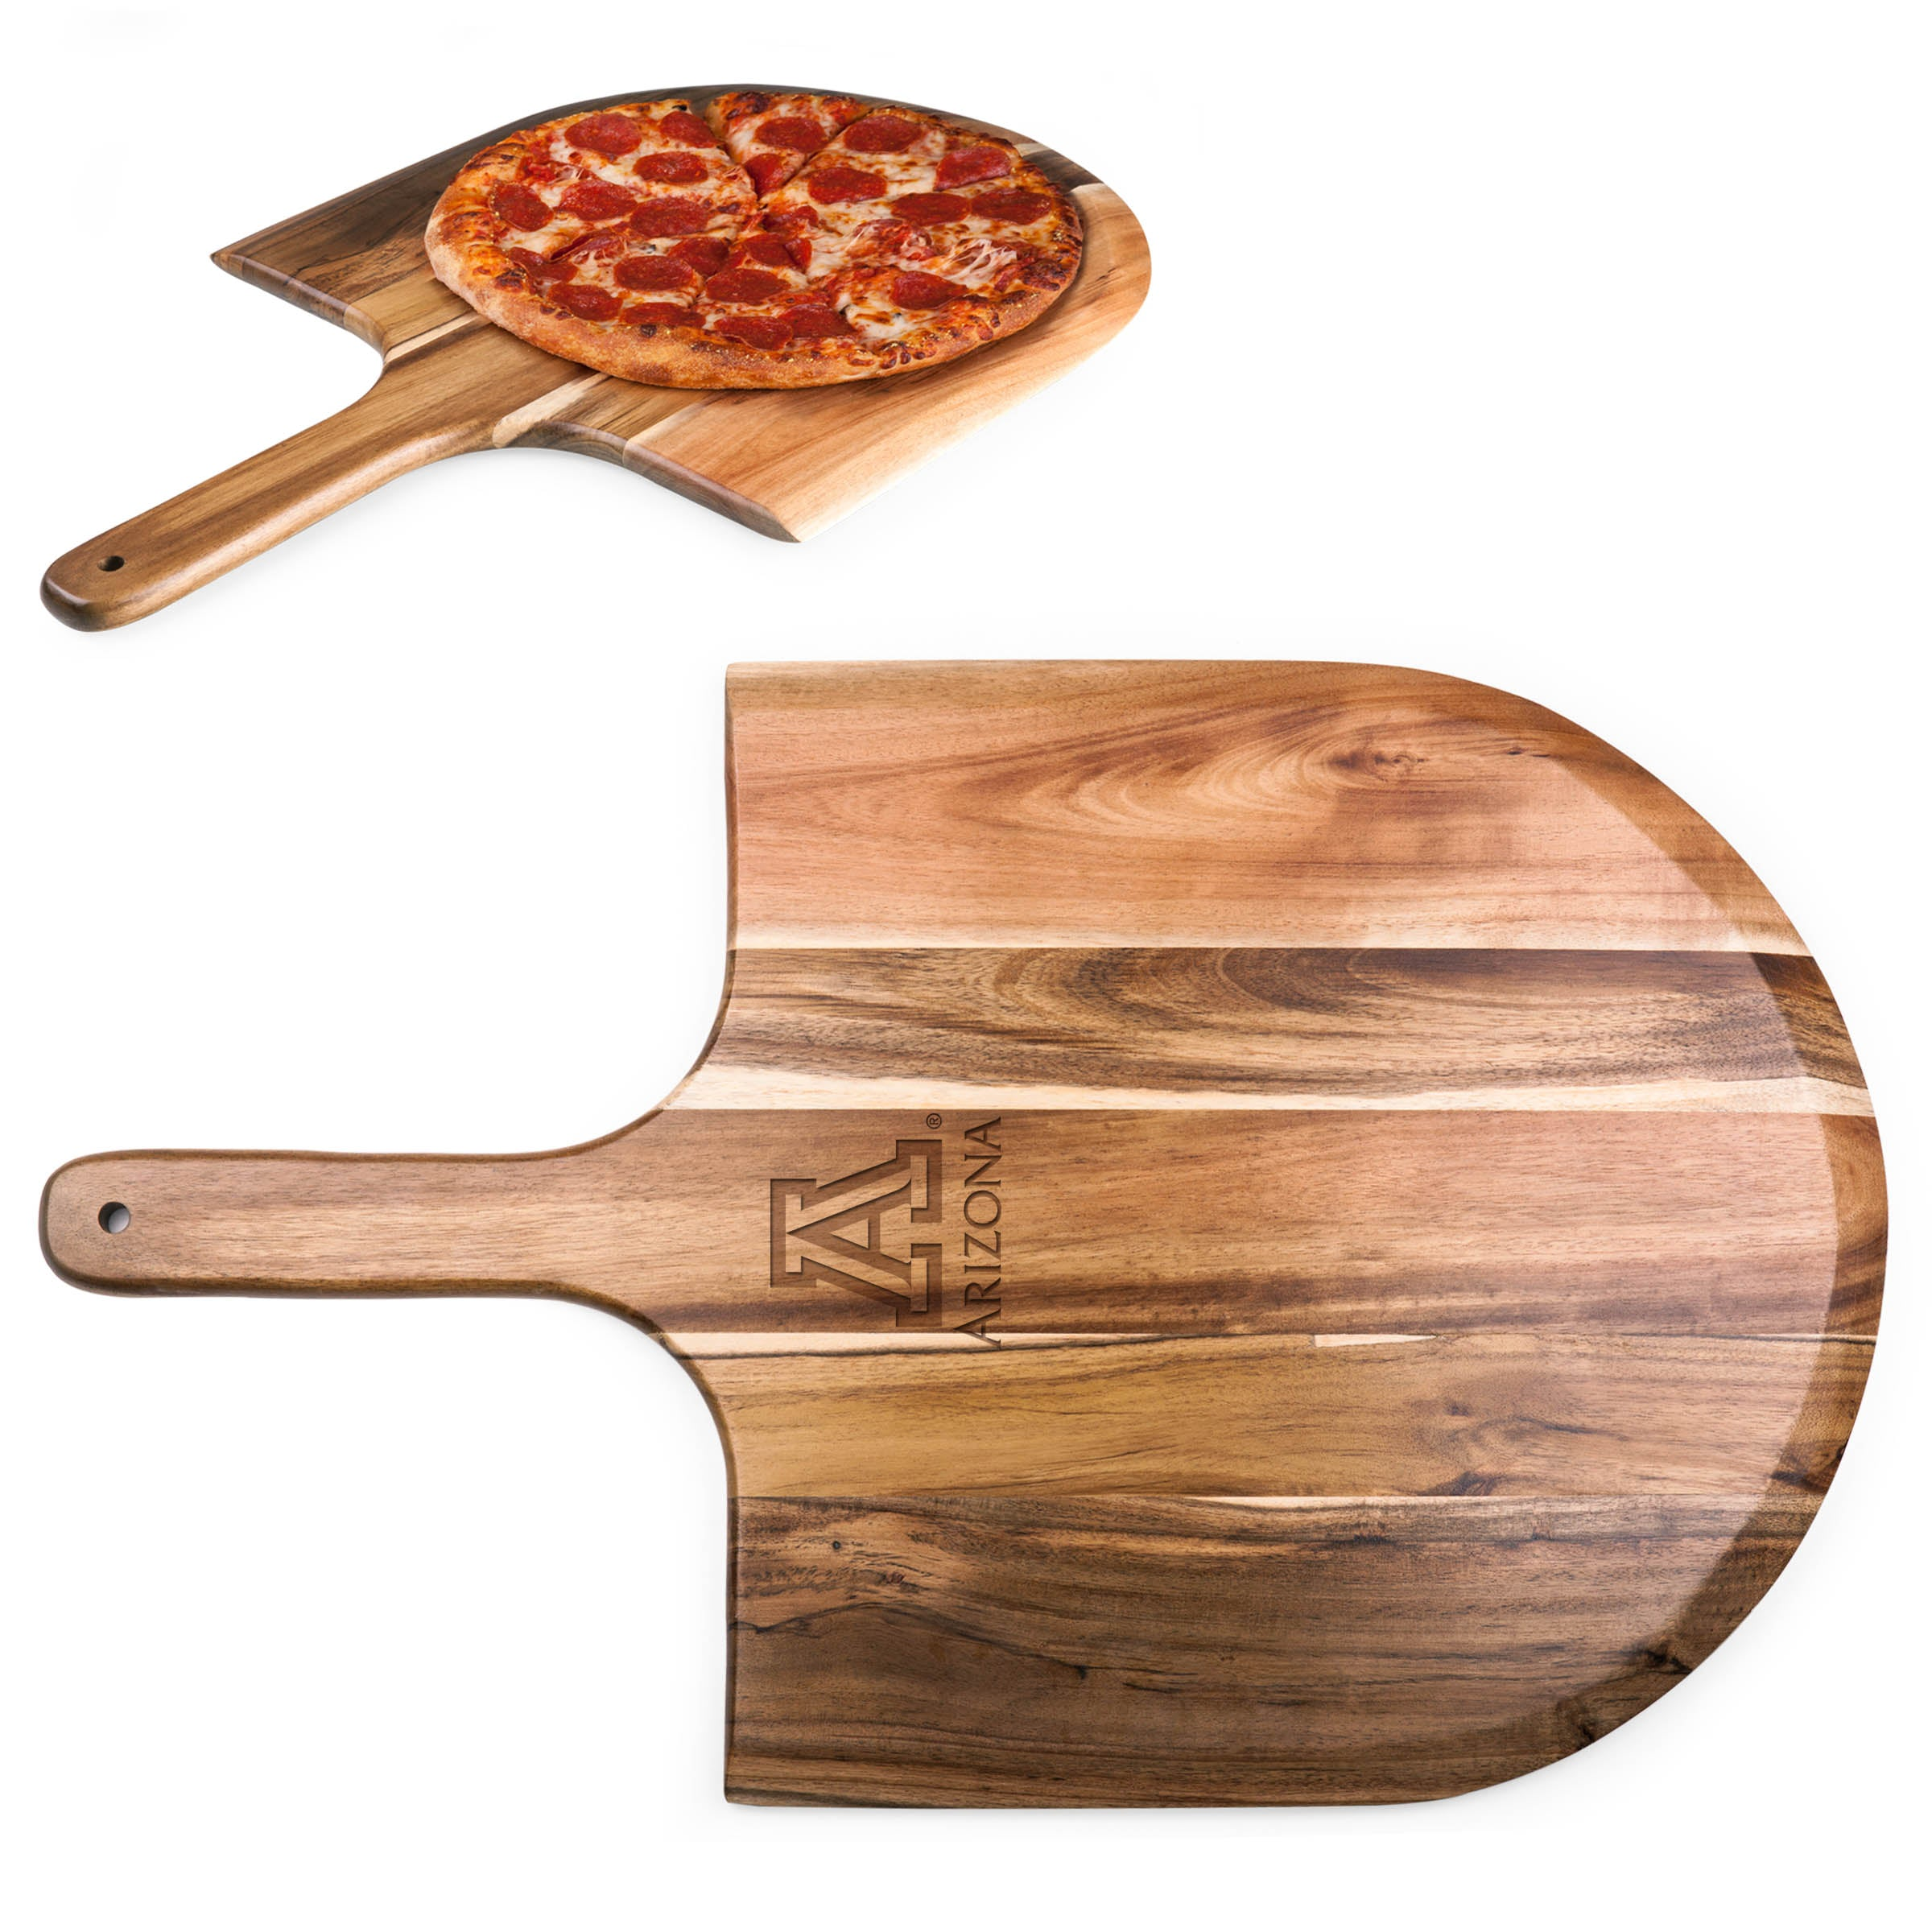 Arizona Wildcats 'Acacia Pizza Peel' Serving Paddle-Natural Wood Laser Engraving